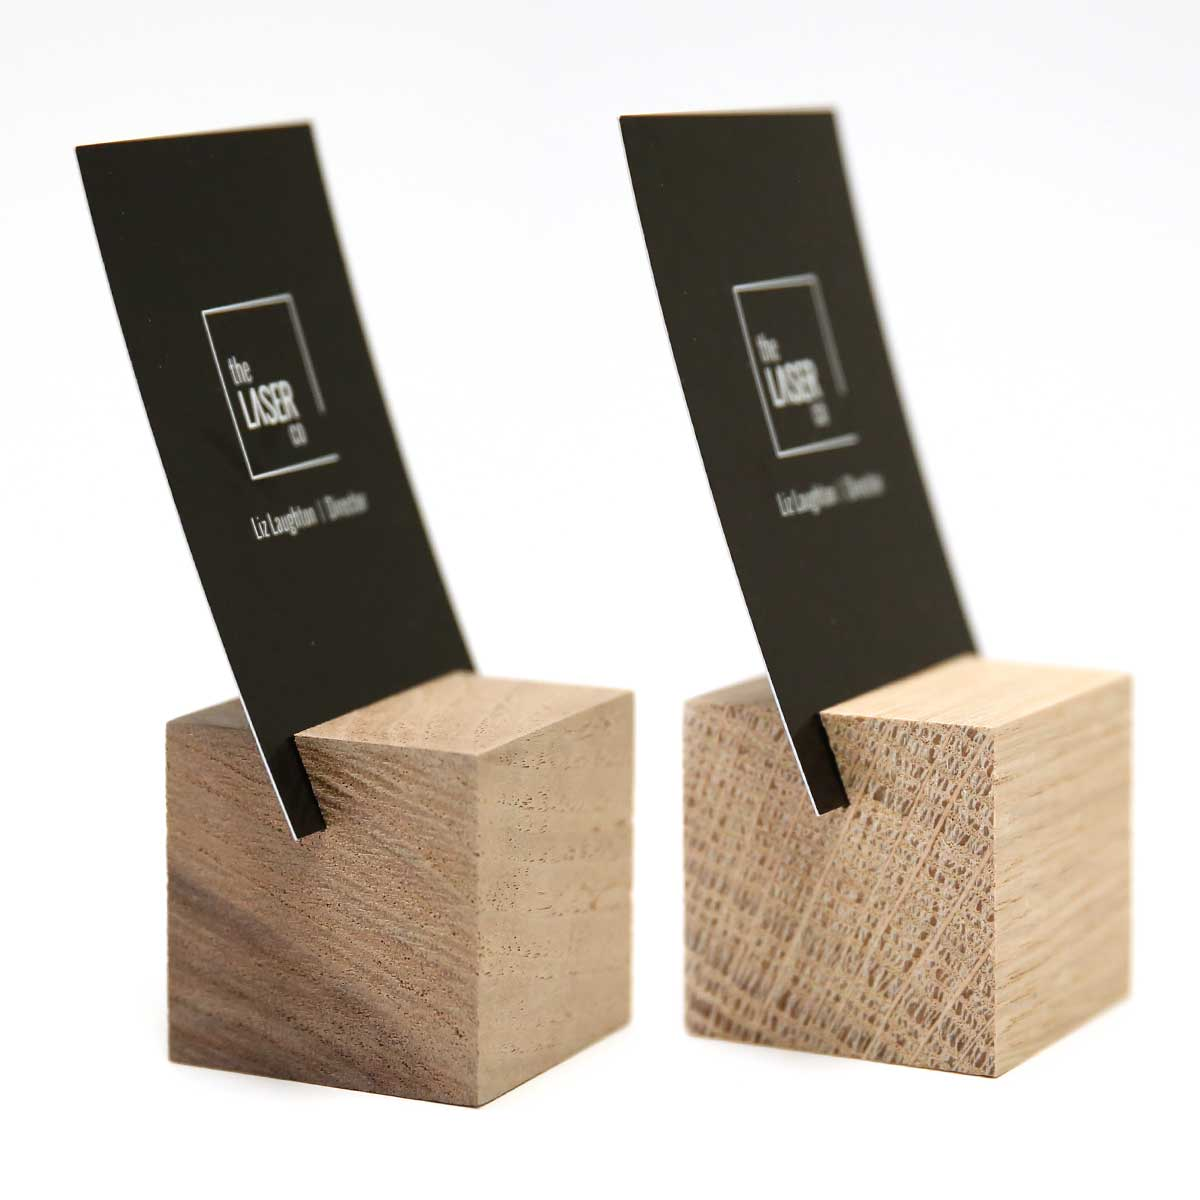 https://thelaserco.com/wp-content/uploads/2020/07/Wooden-business-card-holders-block.jpg